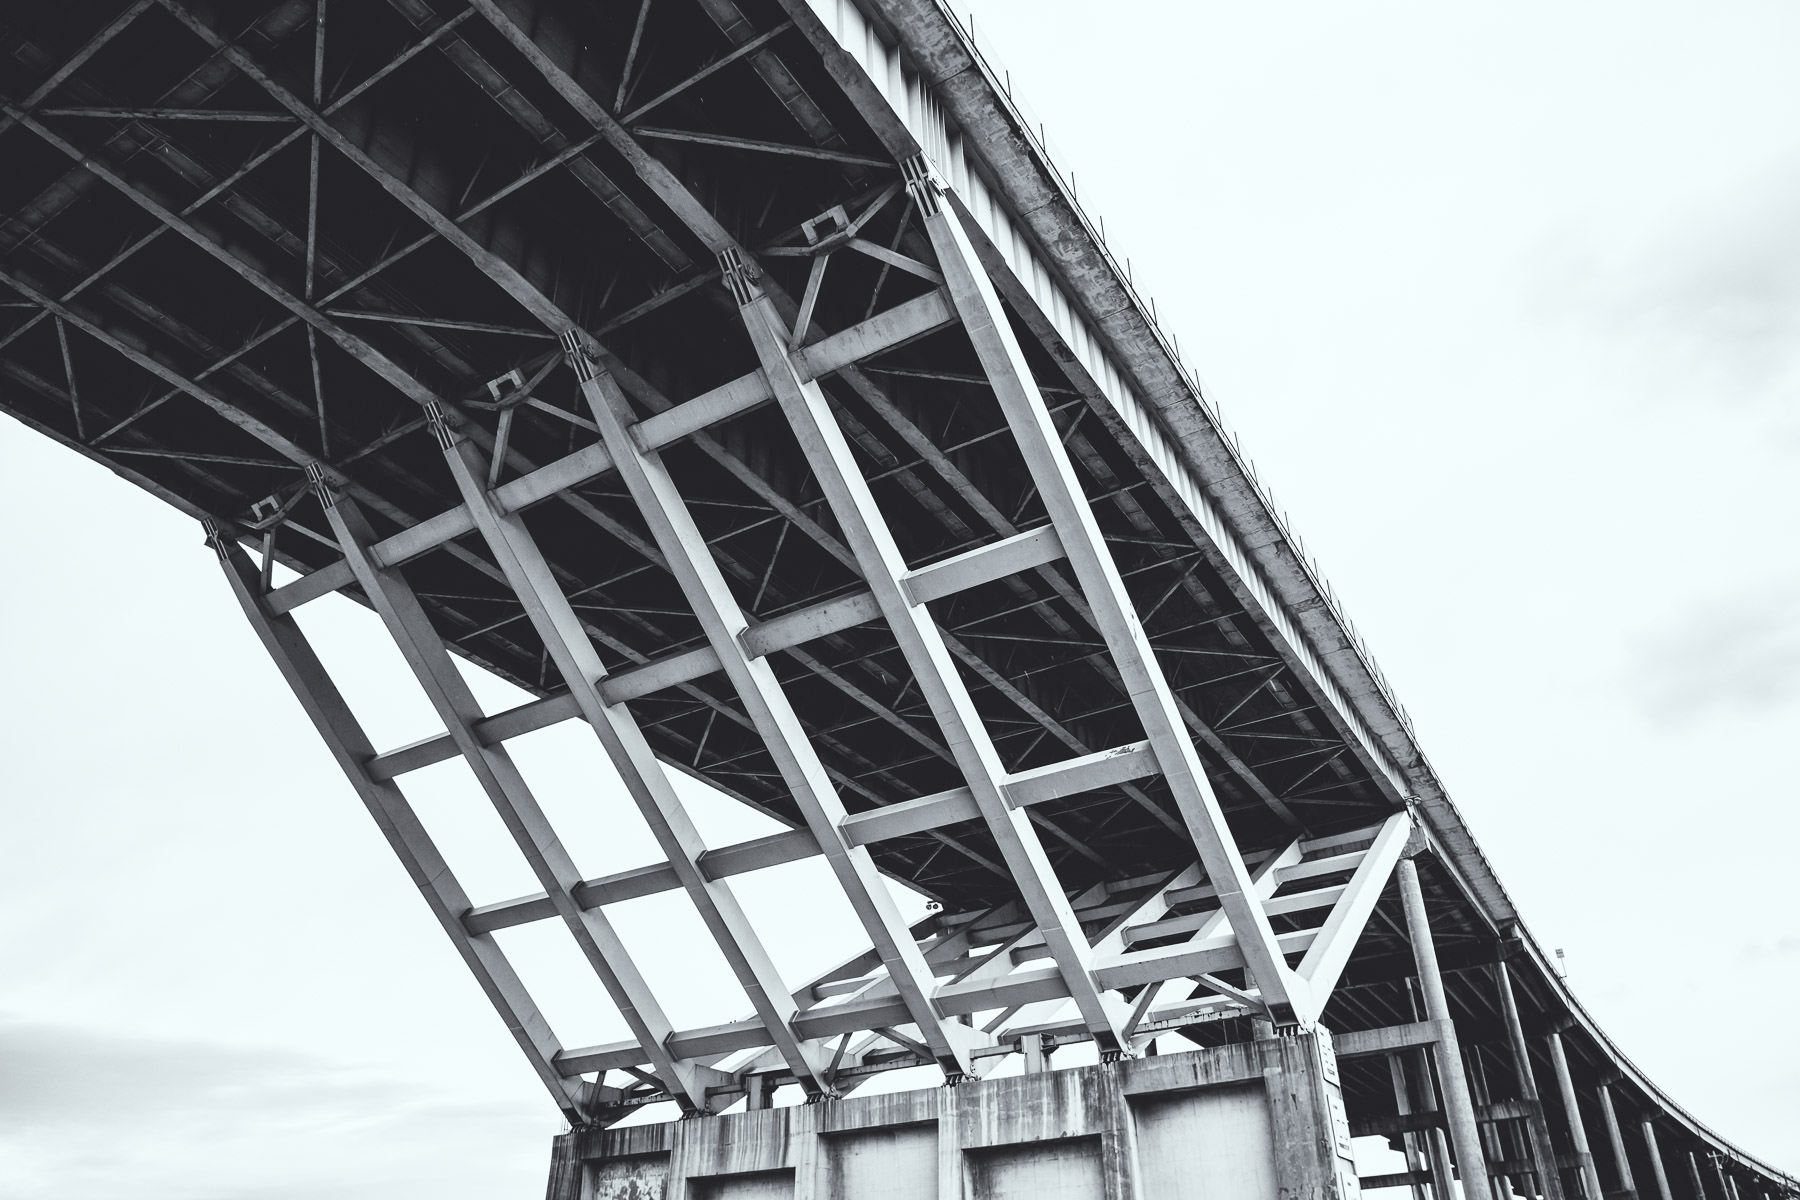 Structural detail of the underside of the 135-foot-tall, 152-foot-wide Sidney Sherman Bridge, which carries Interstate 610 over the Houston Ship Channel.